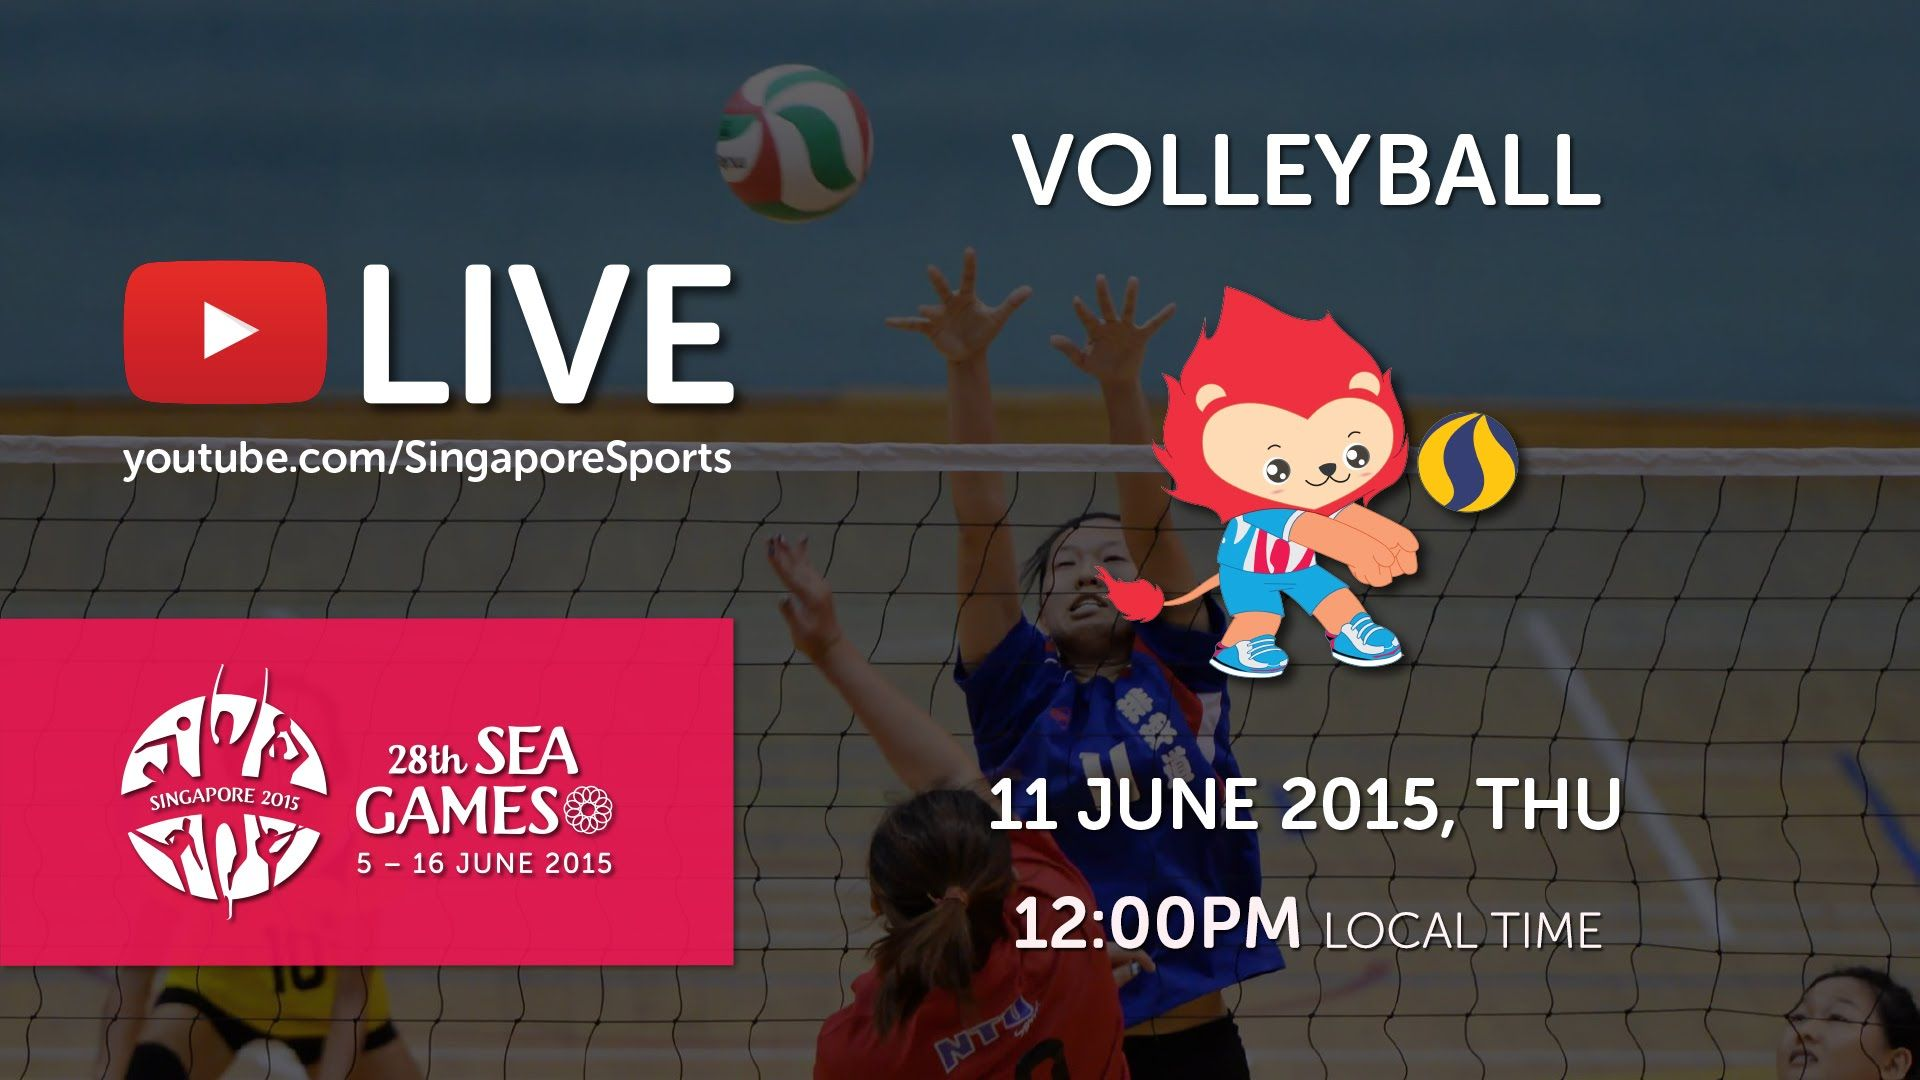 Volleyball Women S Vietnam Vs Indonesia Day 6 28th Sea Games Singapo Volleyball Volleyball Live Games